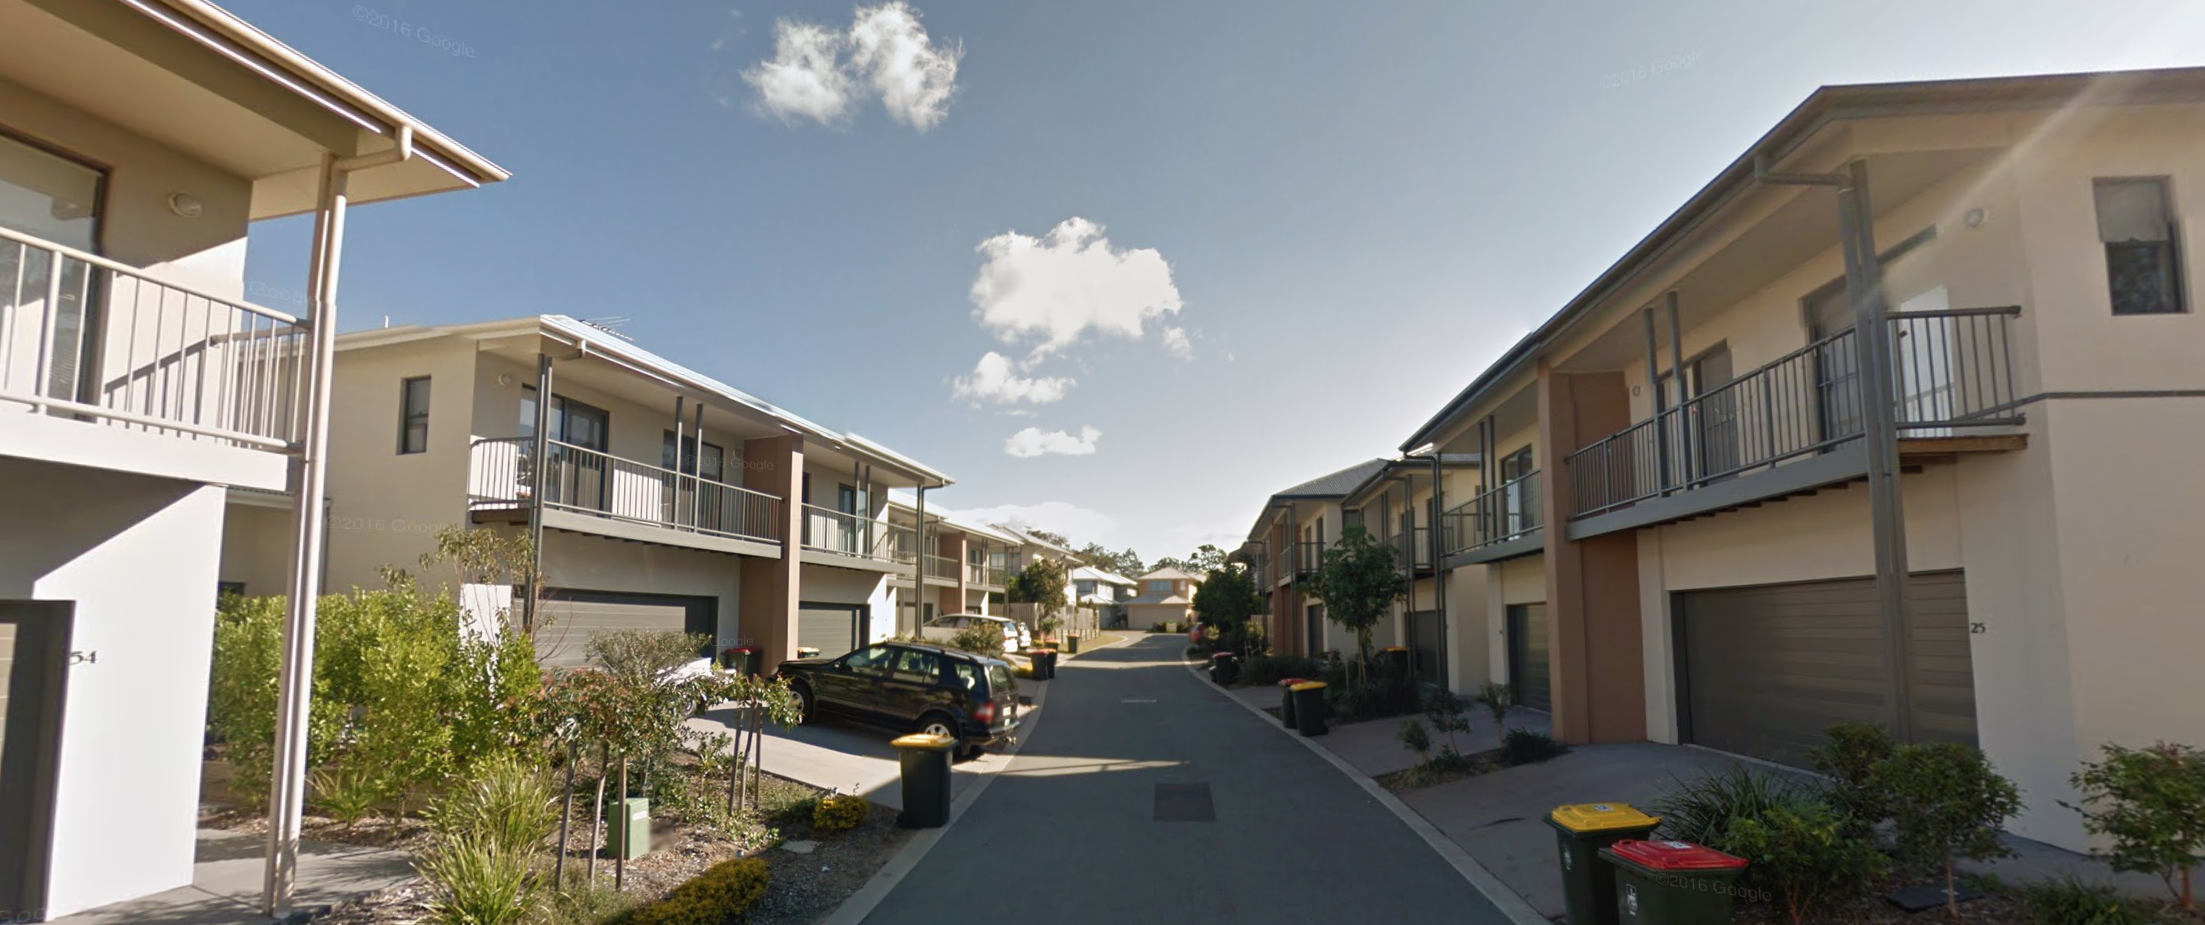 Seaforth Townhouse designs by Biscoe Wilson Architects. Image from Google Street View